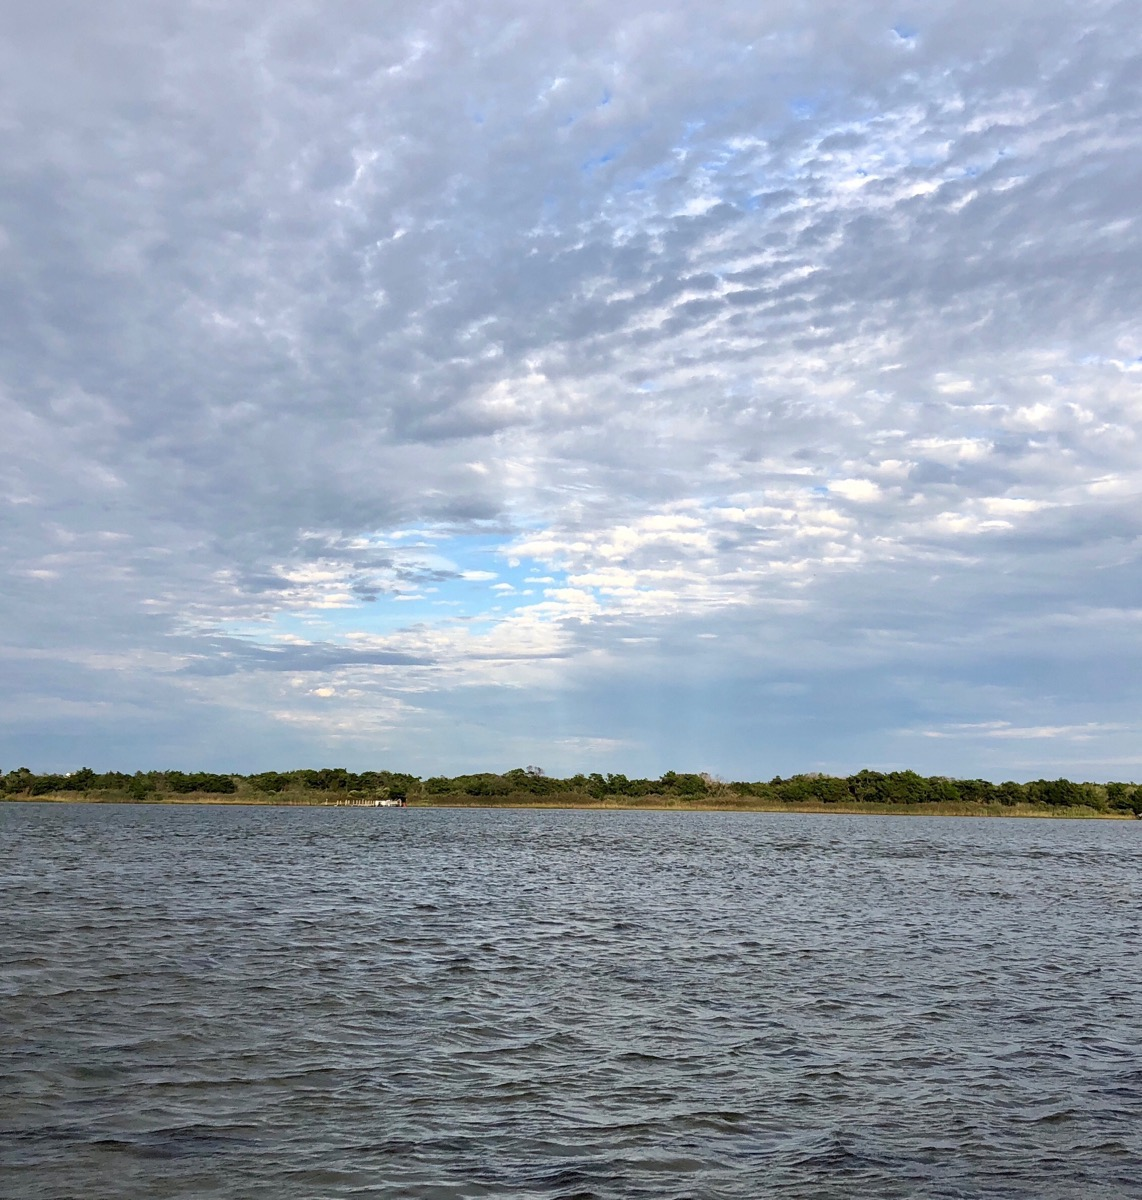 Barnegat Bay with cloudy sky